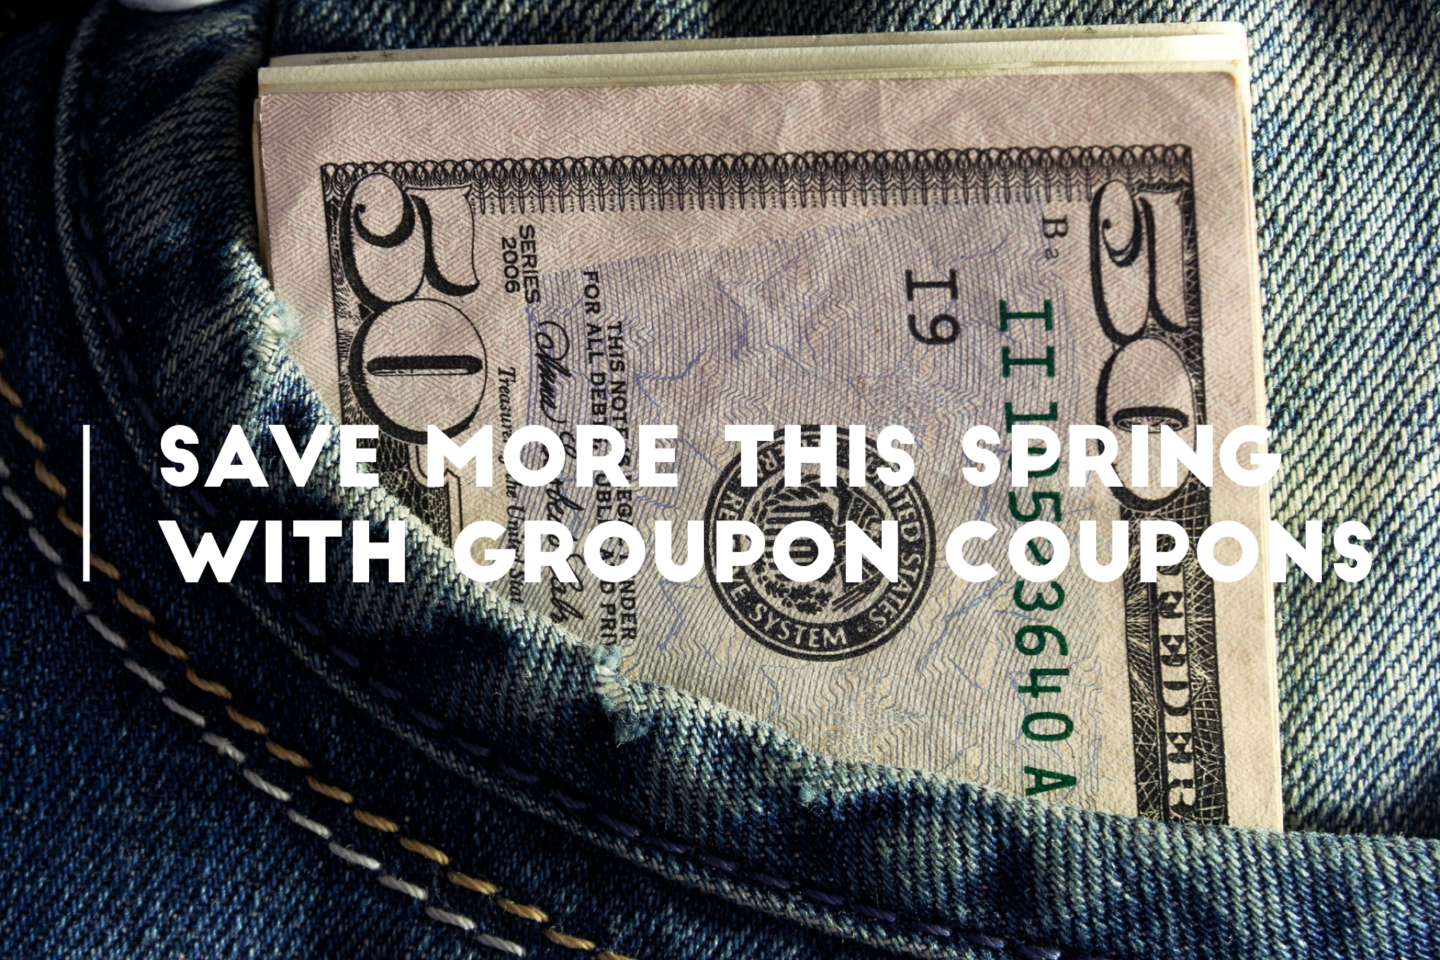 Save More This Spring With Groupon Coupons